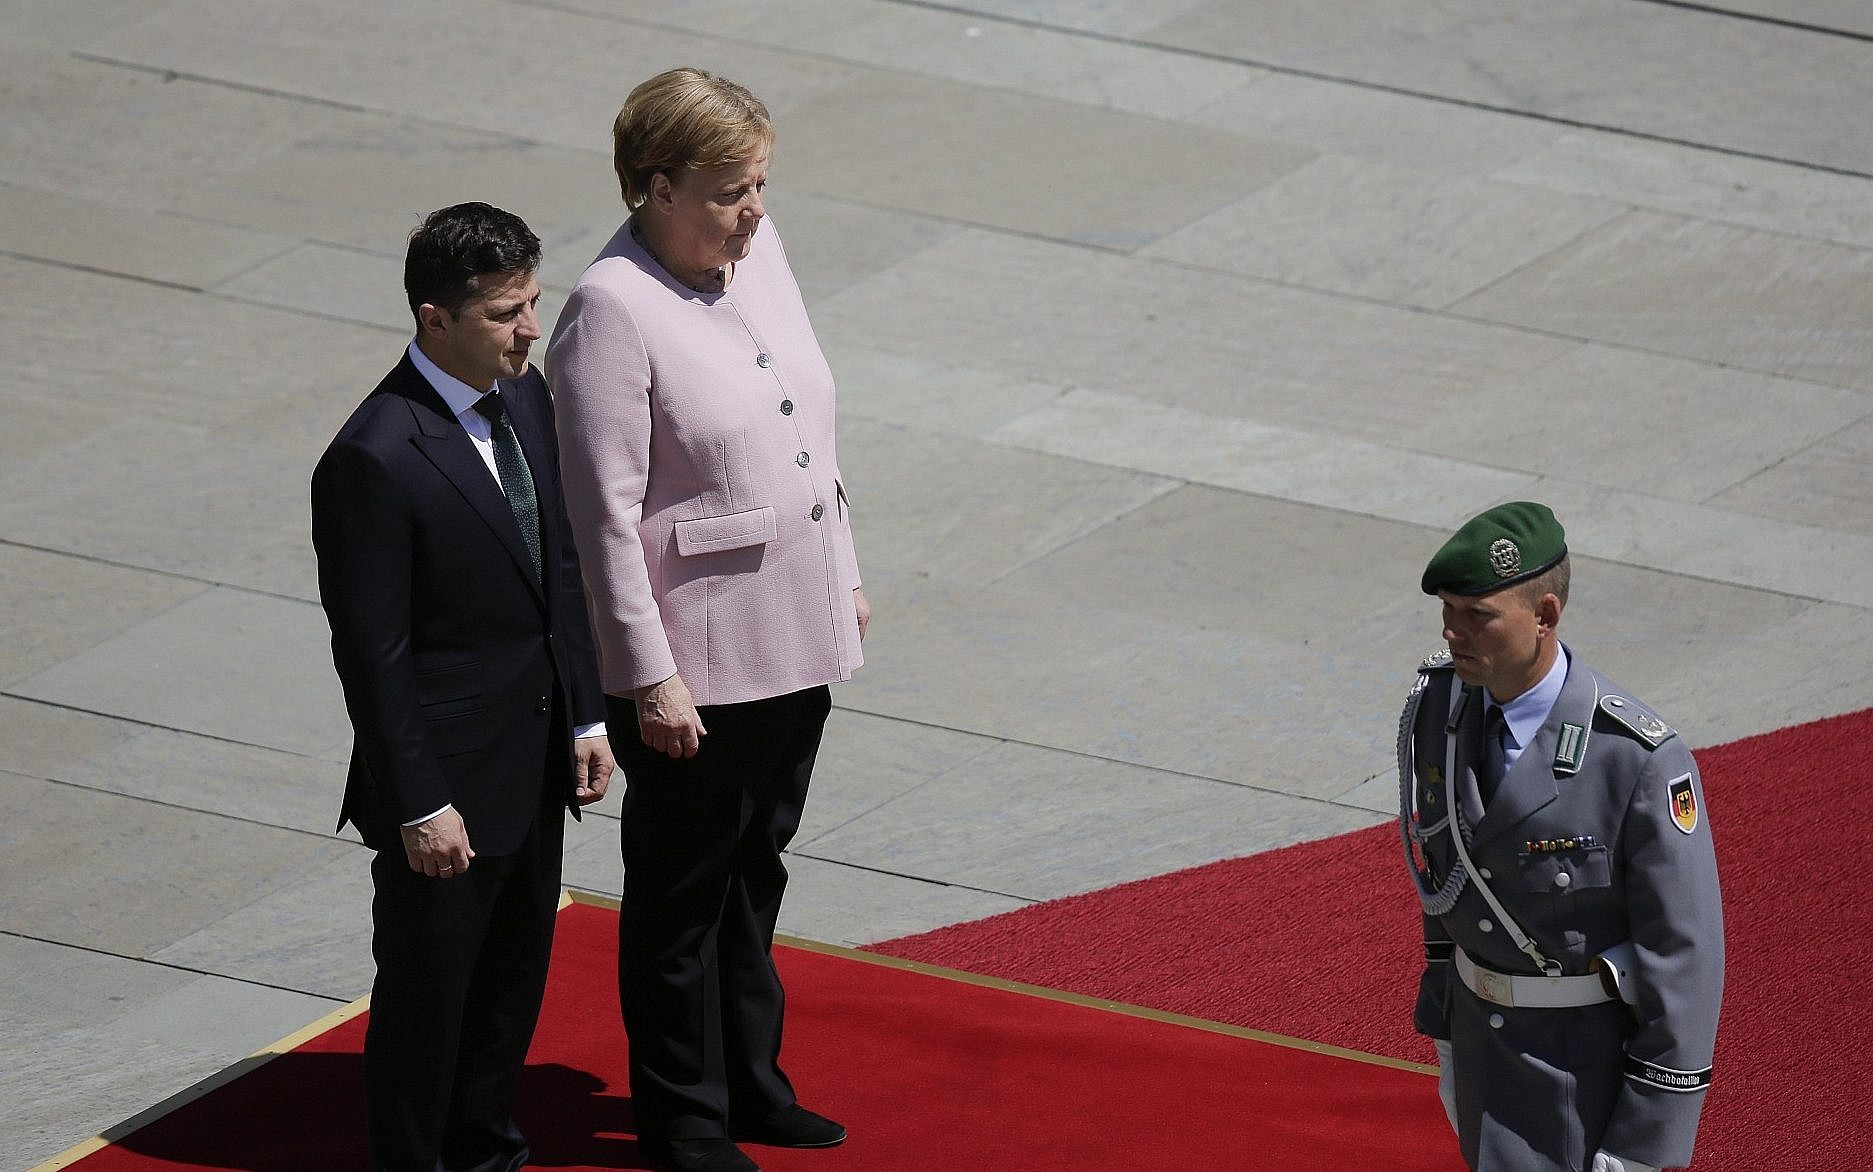 Germany's Merkel visibly shakes during ceremony | The Times